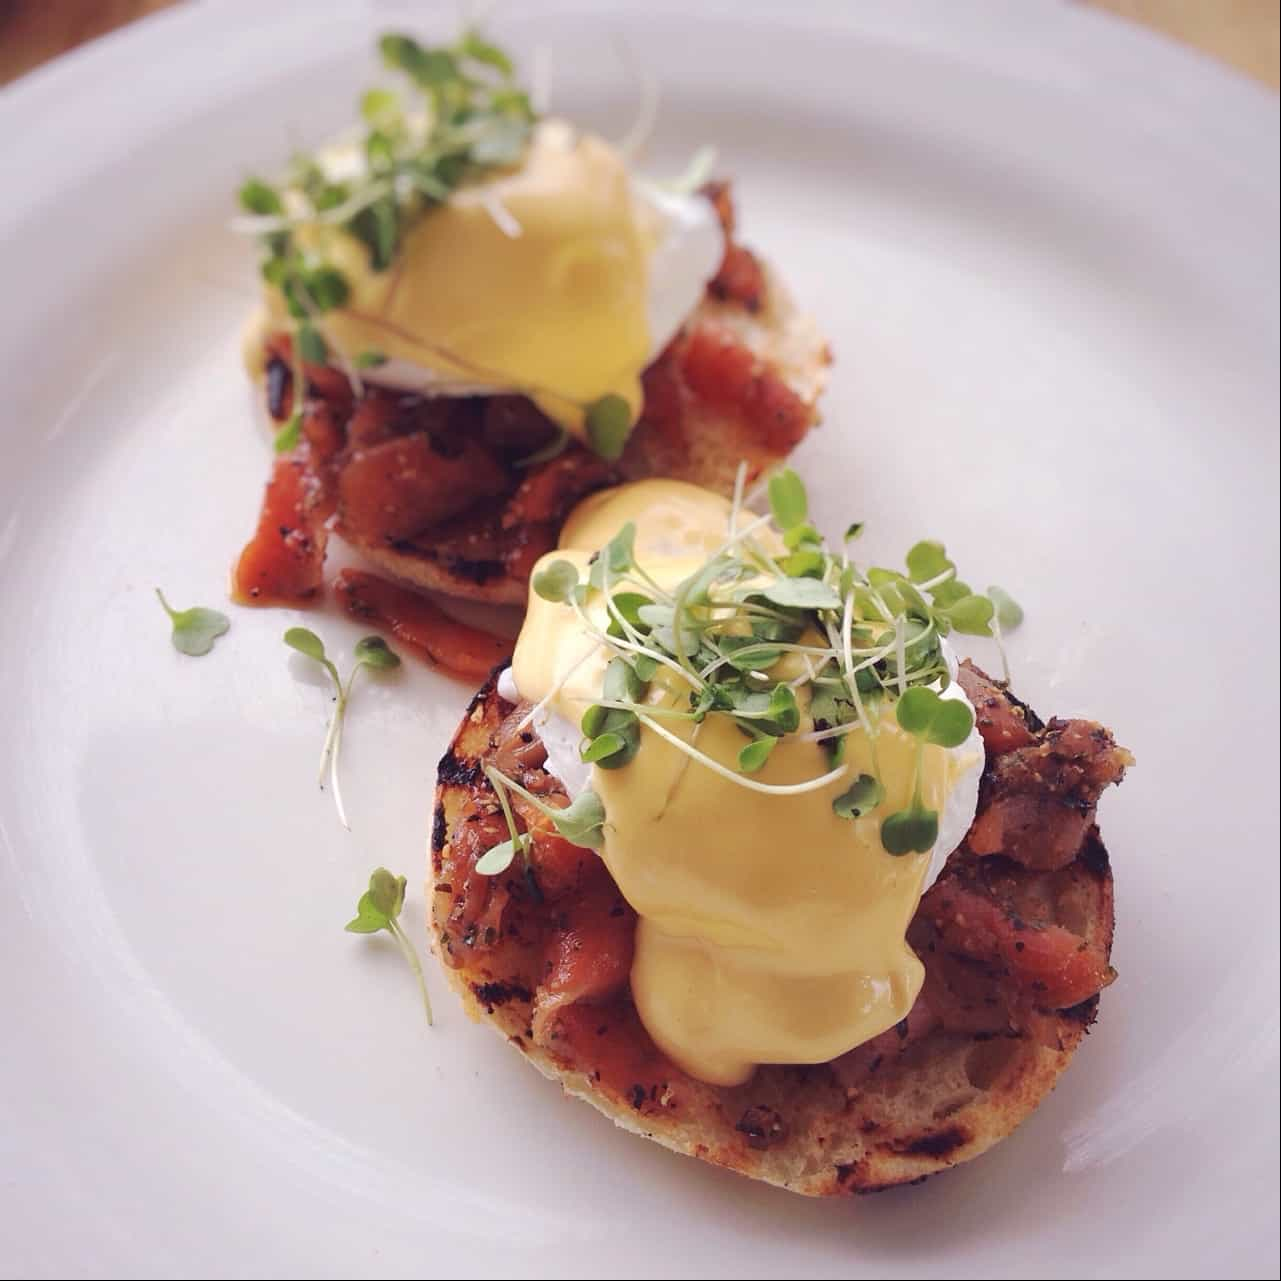 Eggs Benedict as served at The Pear Tree.